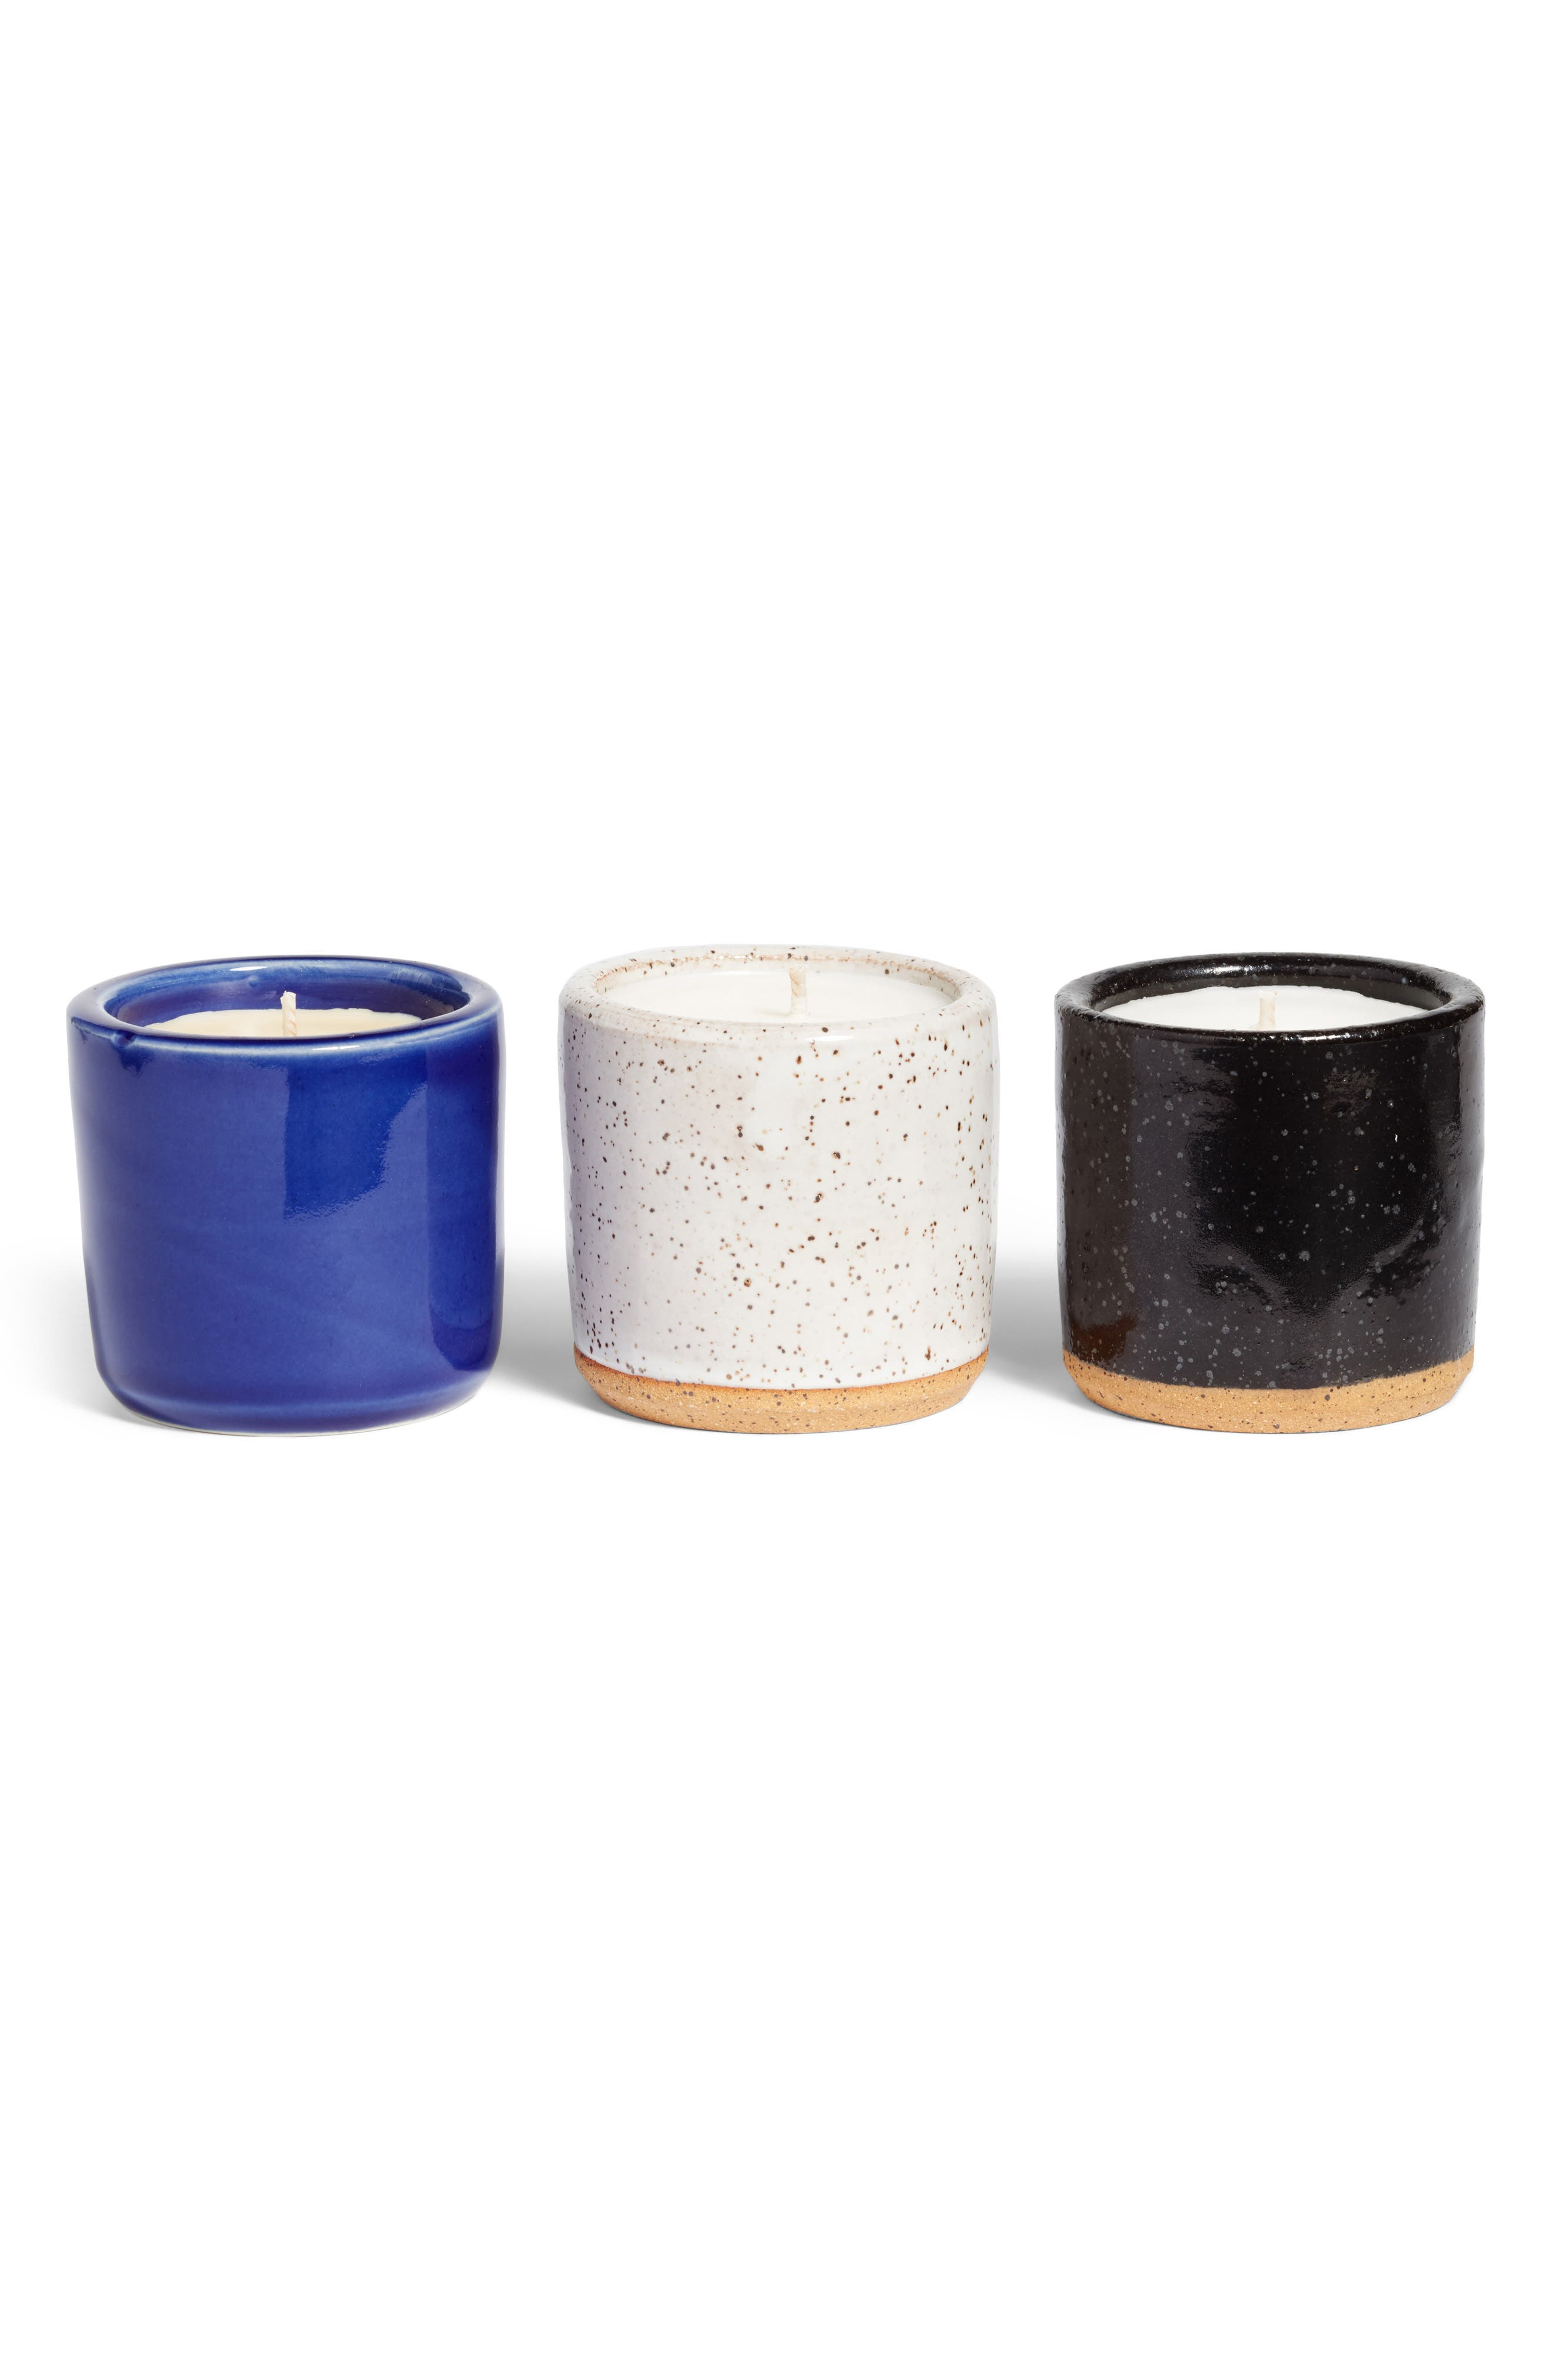 Set of 3 Ceramic Scented Candles,                             Main thumbnail 1, color,                             001